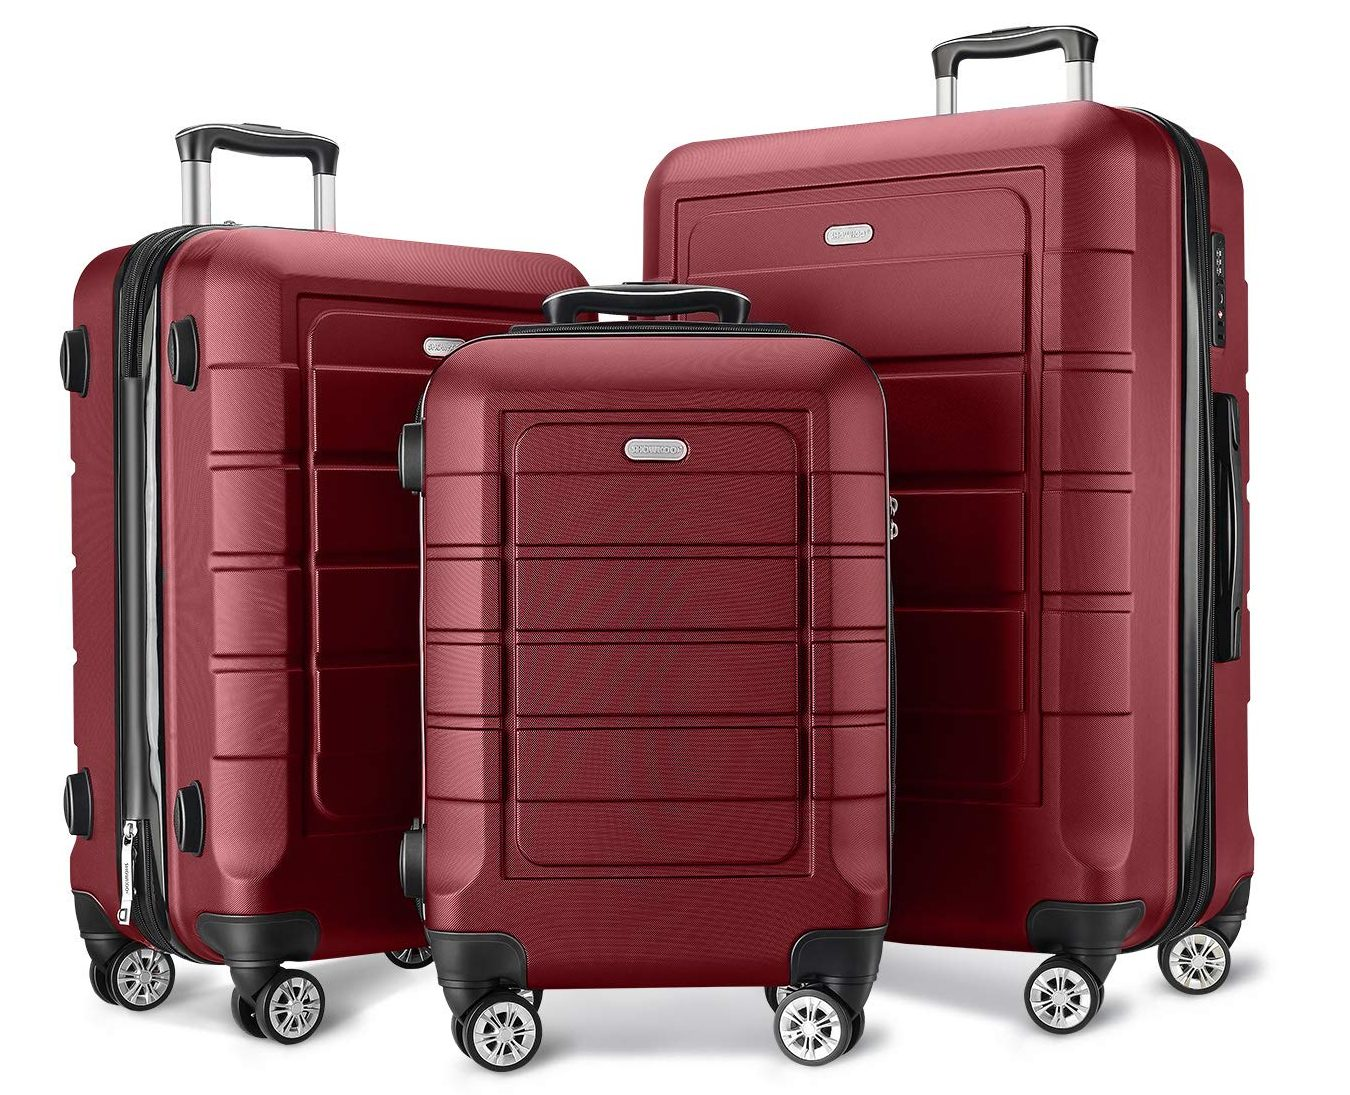 TOP 10 BEST AWAY LUGGAGE WITH SPINNER IN 2020